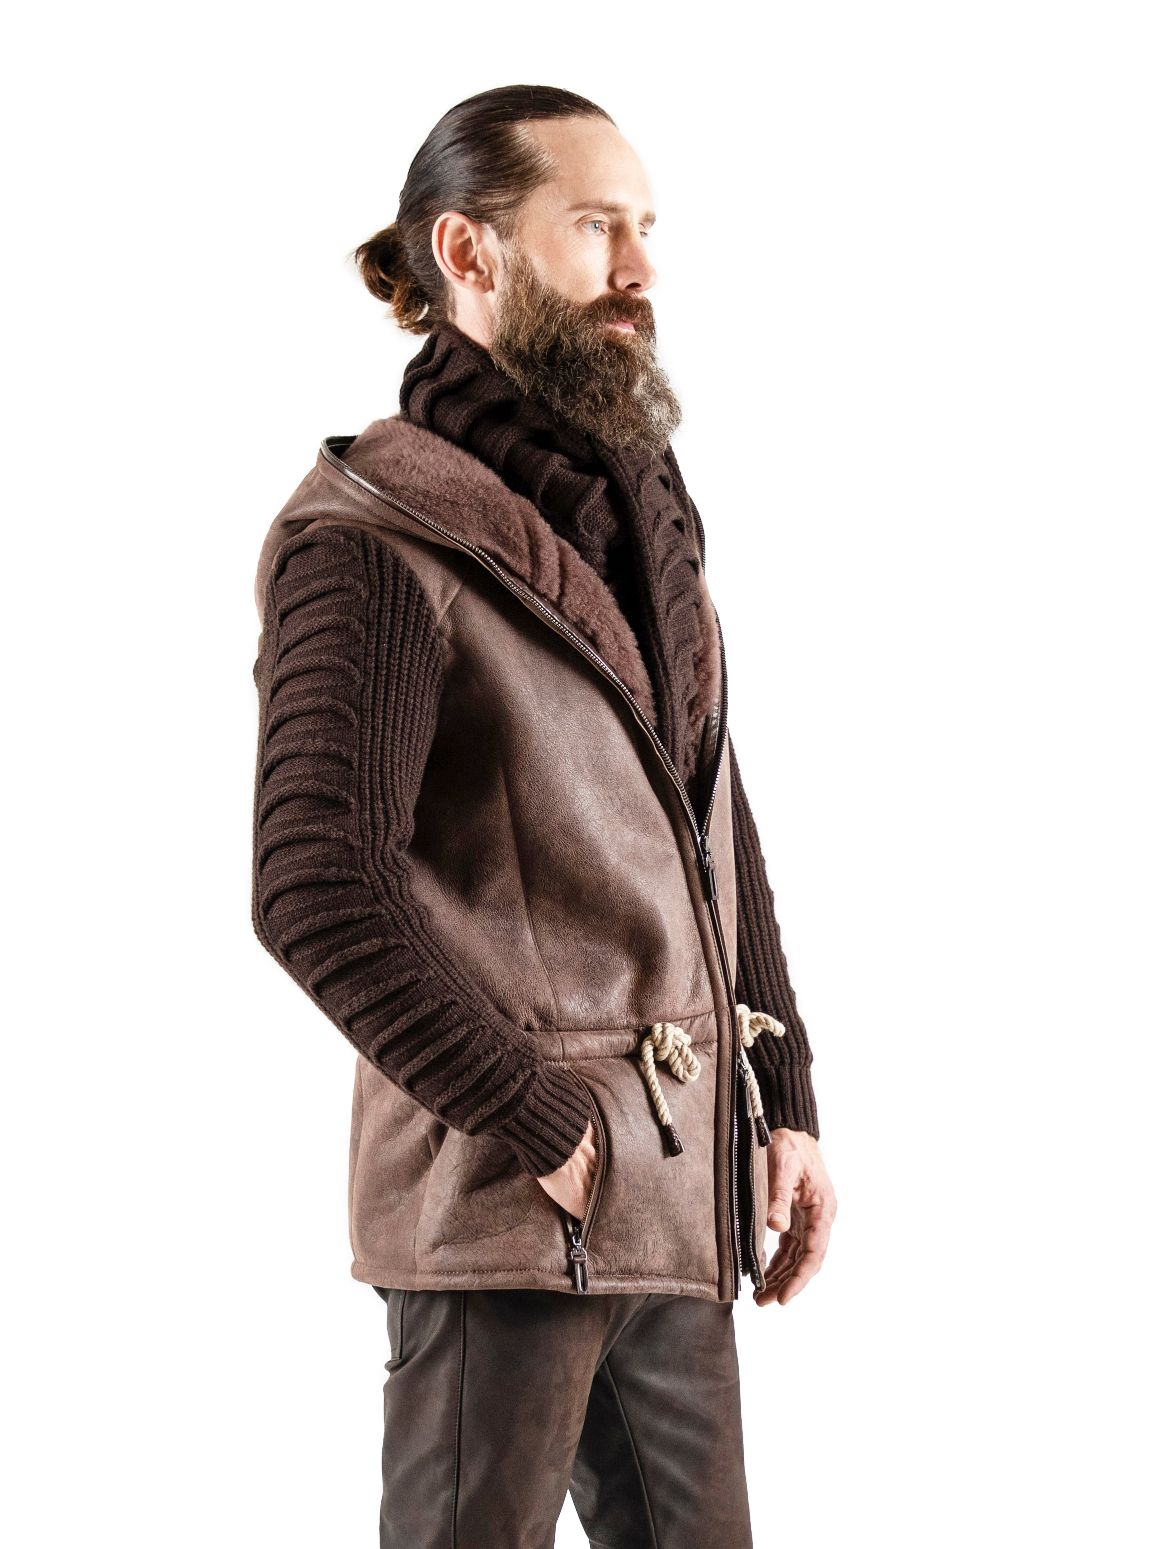 Ultra-light weight Spanish lamb shearling with cashmere louver-knit